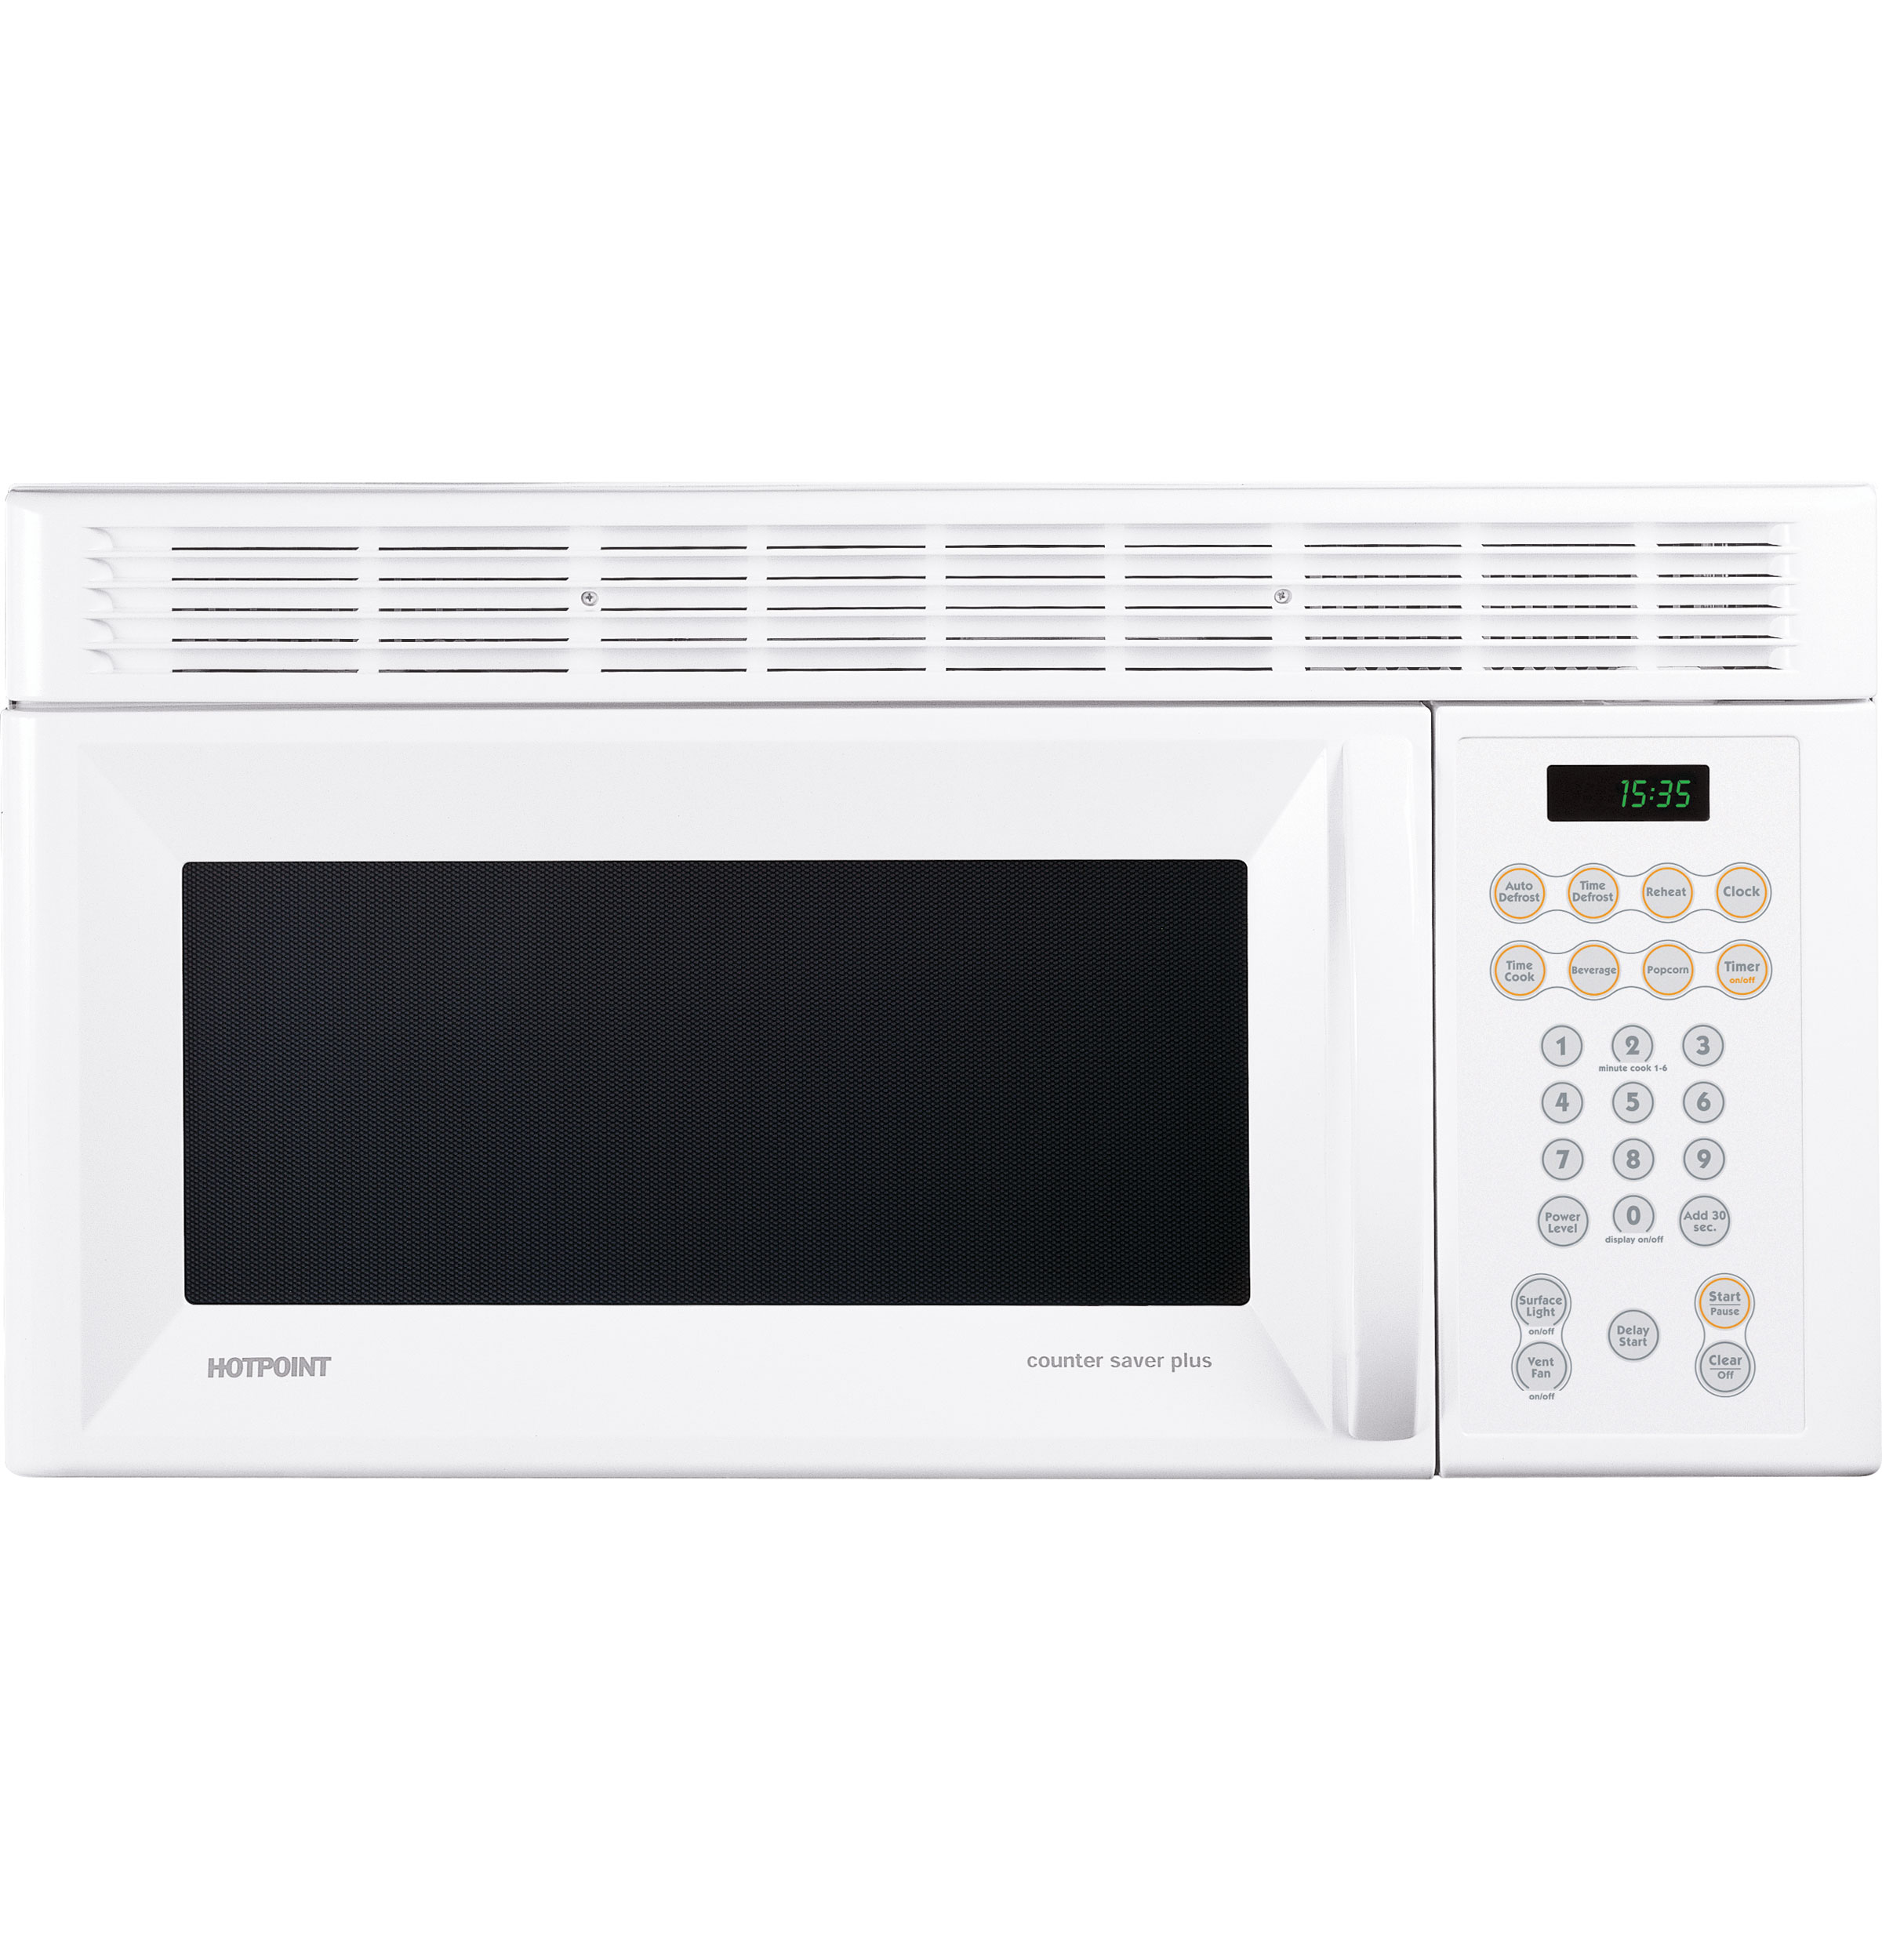 Hotpoint 174 1 5 Cu Ft Over The Range Microwave Oven